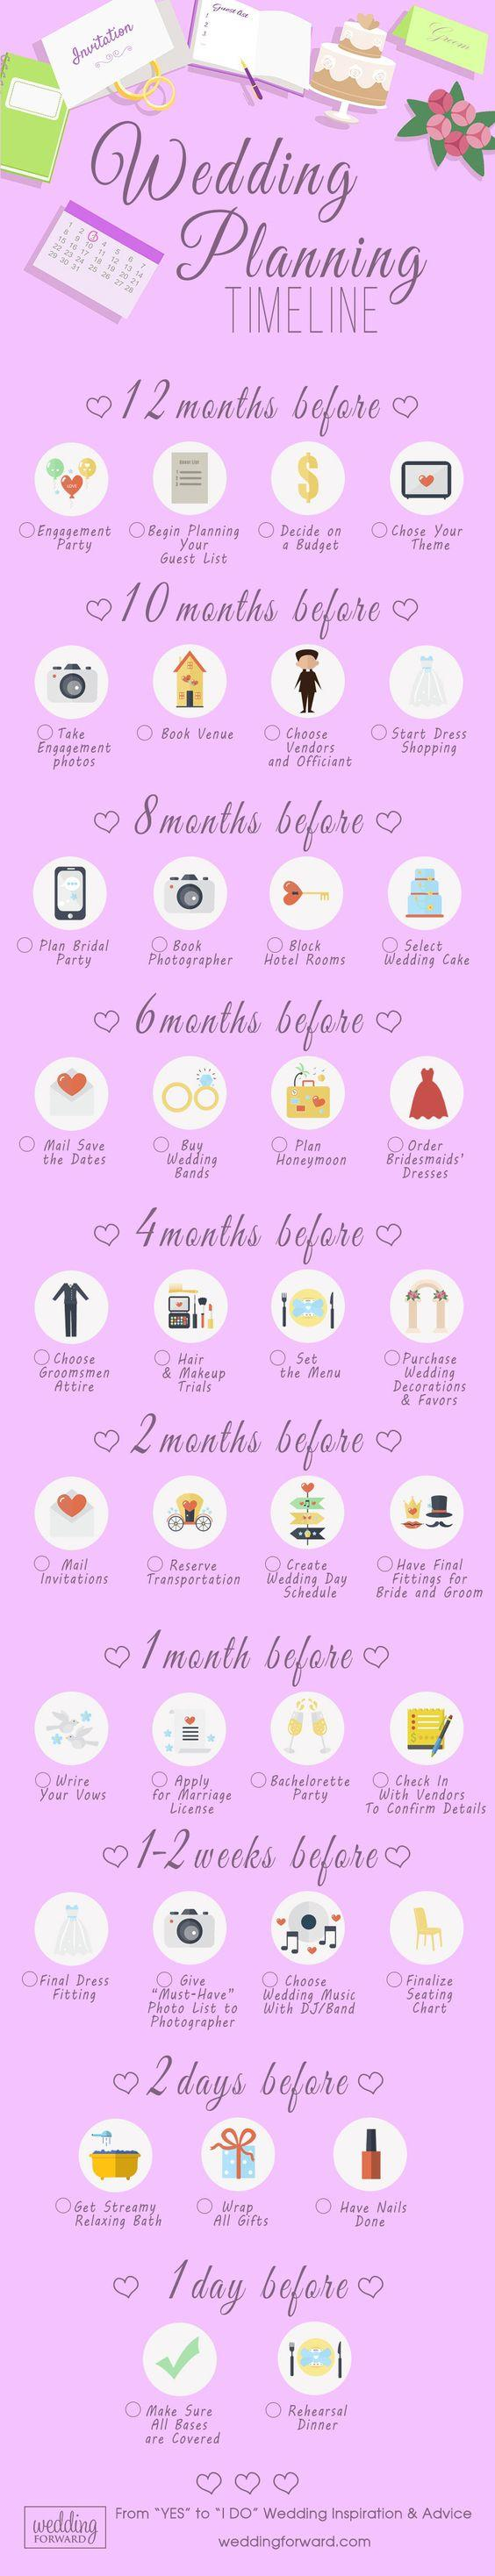 12 month wedding planning timeline infographic